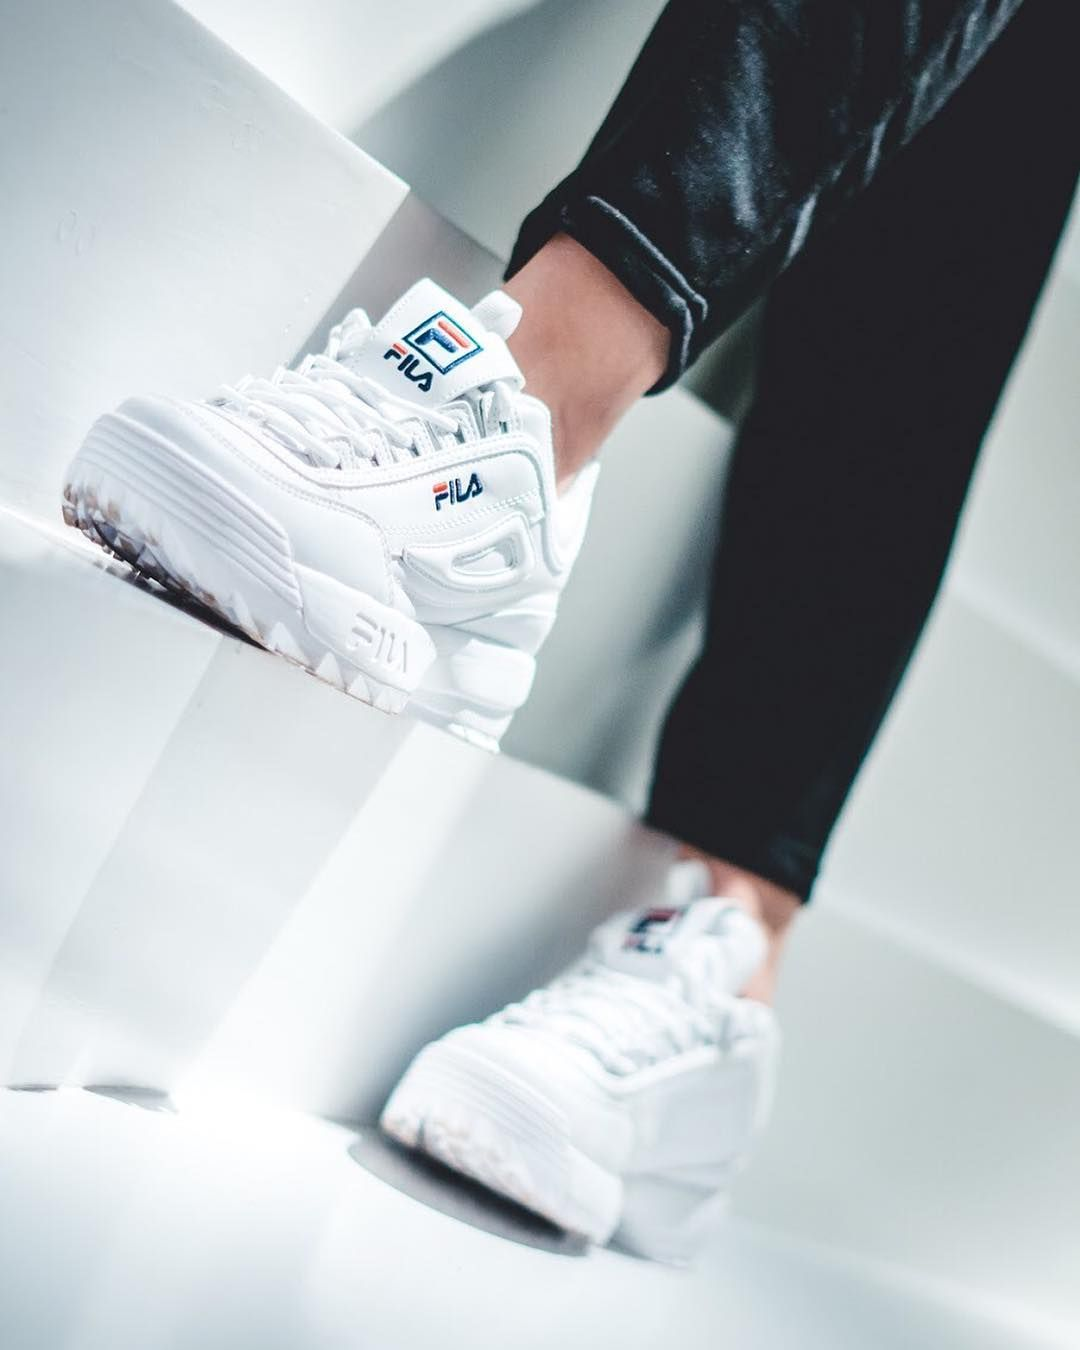 Are White Disruptors Love Photo Matt Why Not Filausa Filaeurope Fila Filasneakers Disruptor Chunky Dadshoe Dad Shoes Instagram Posts Instagram